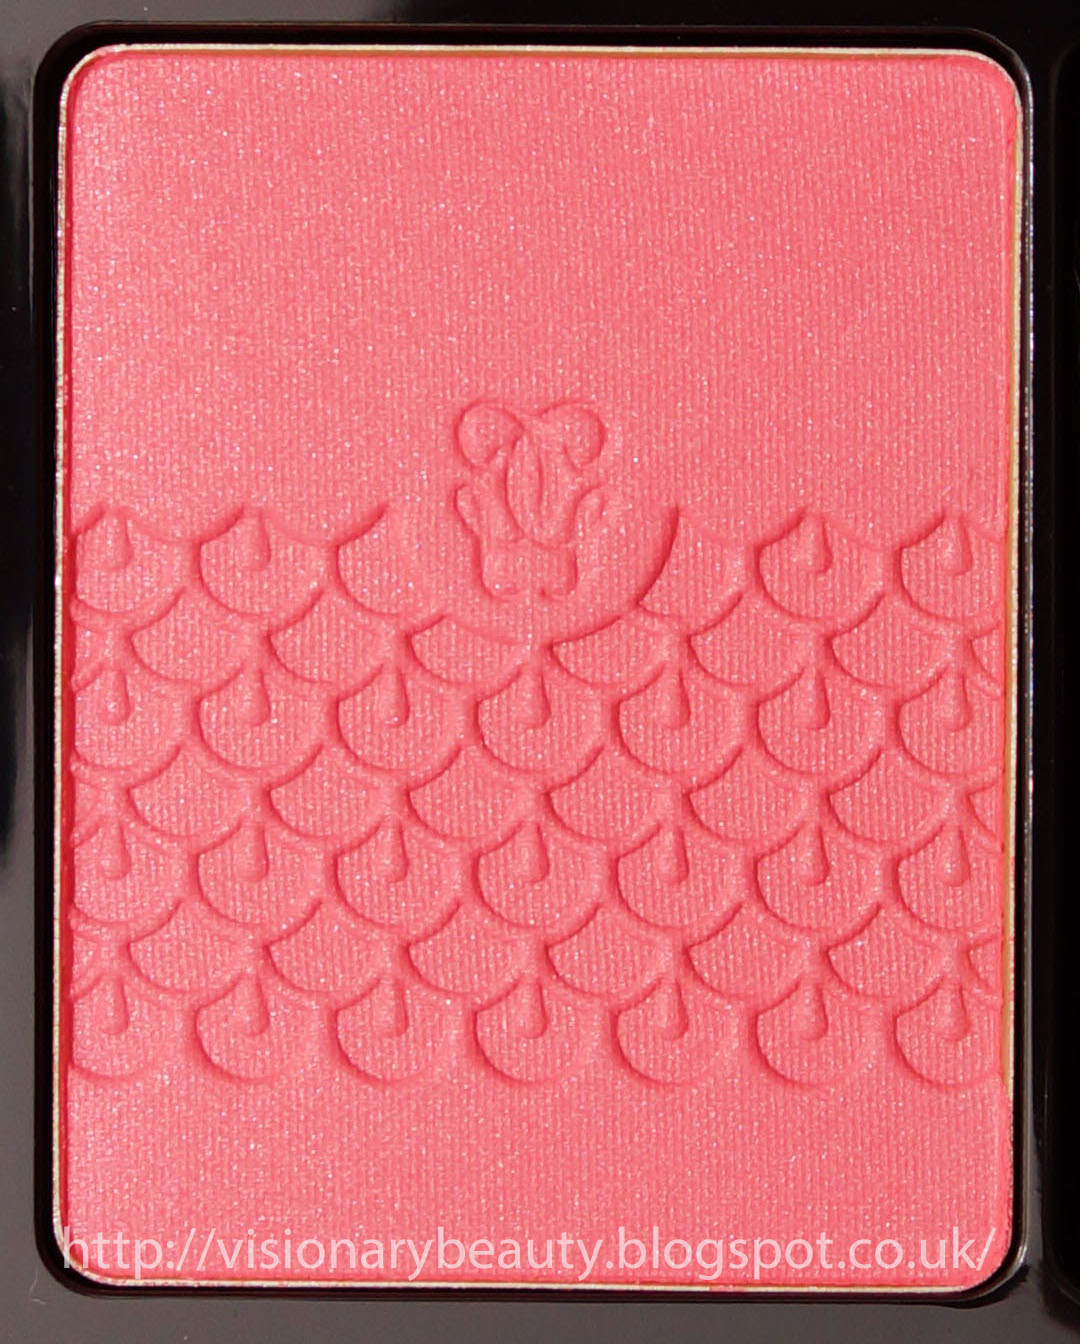 to wear - Bloom guerlain of rose fall collection video